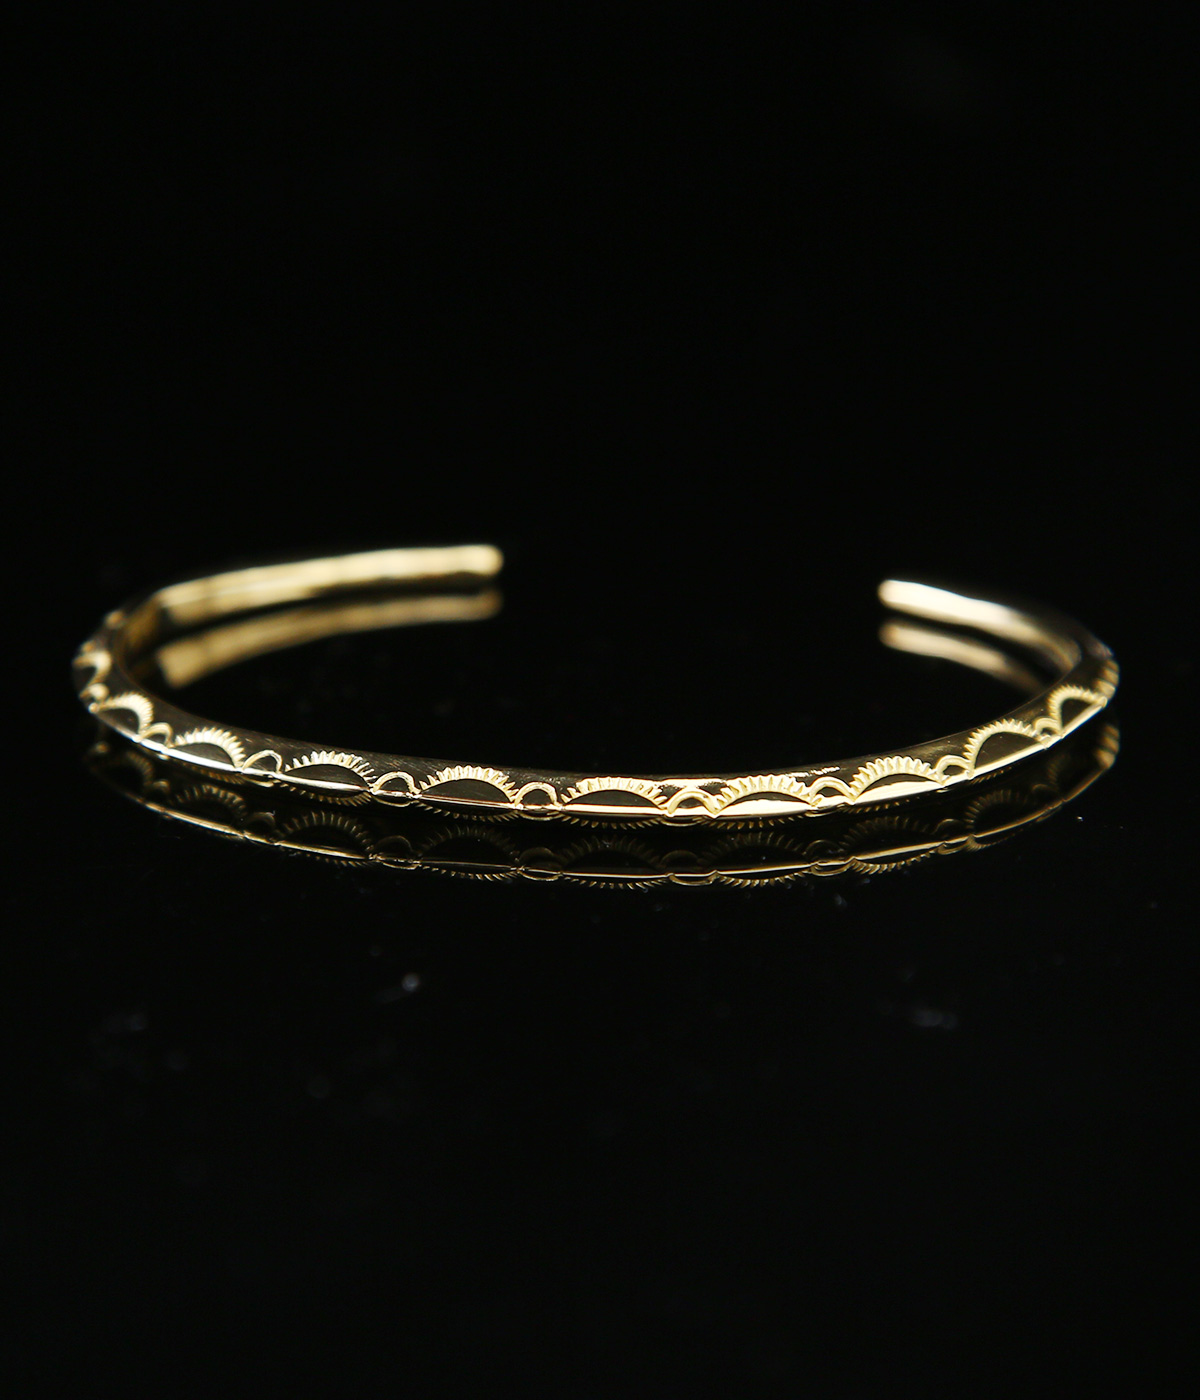 EXTRA THIN TRIANGLE BANGLE -LEAF- 18K